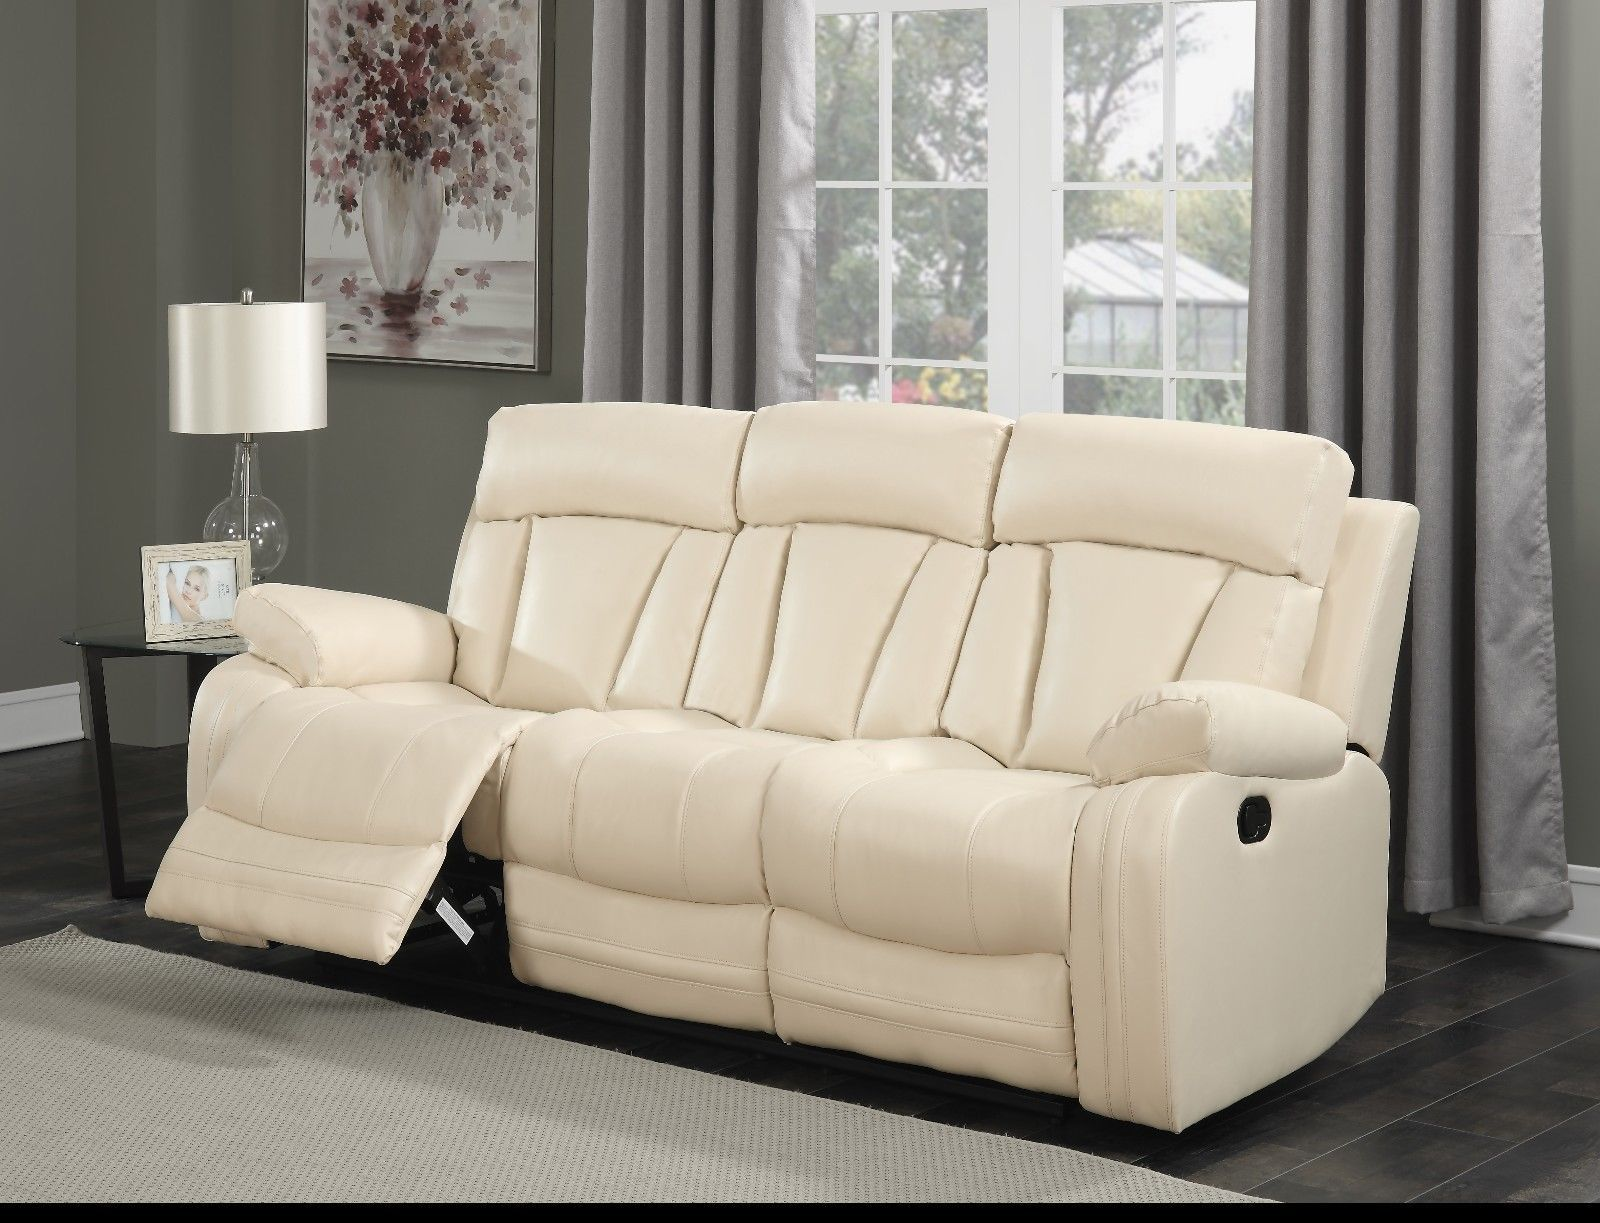 Meridian 645 Avery Living Room Set 3pcs in Beige Bonded Leather Contemporary